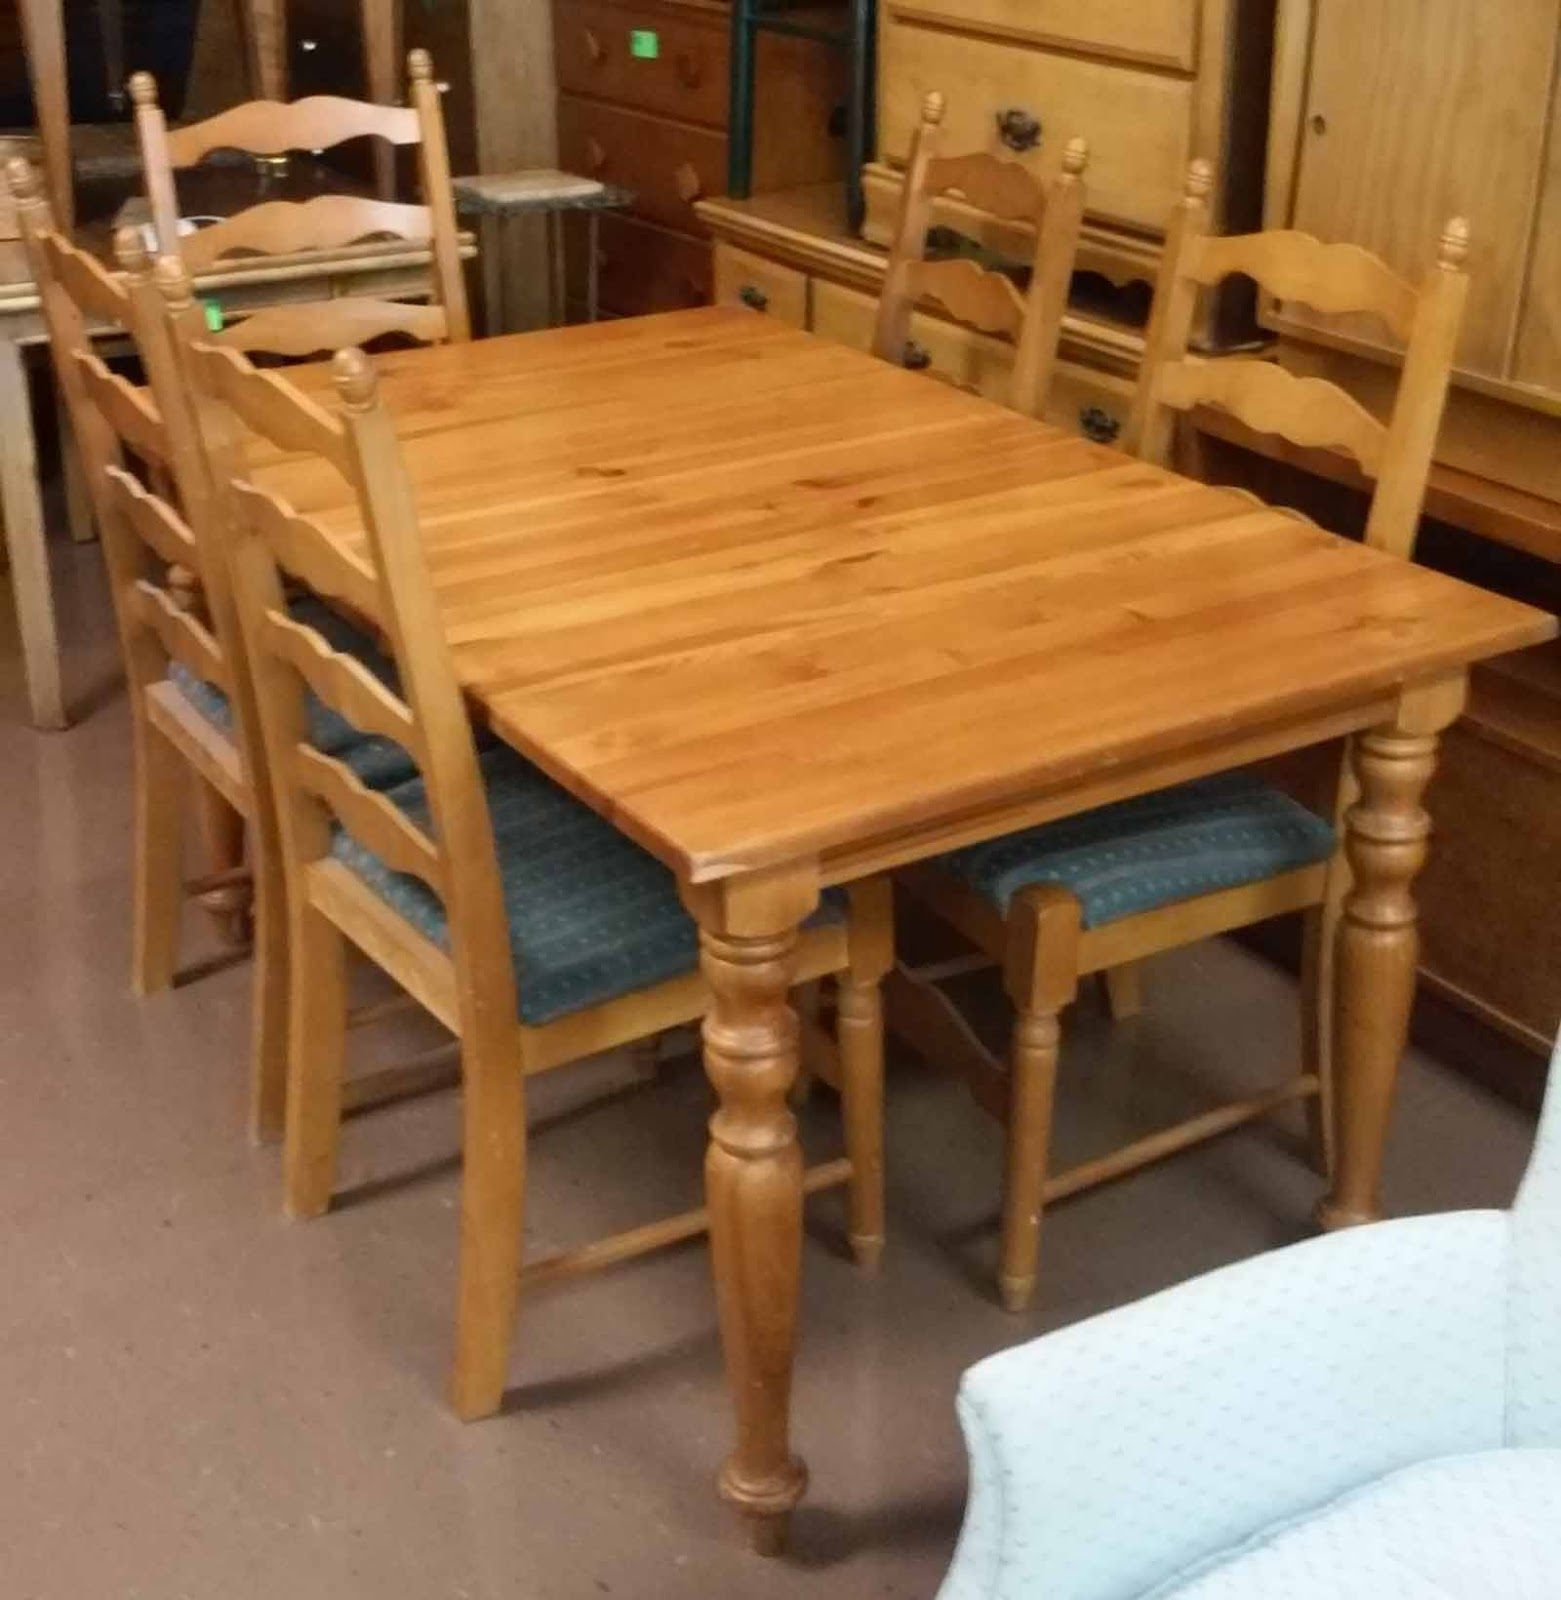 Etonnant SOLD Knotty Pine Dining Set: Table, Leaf, 5 Chairs   $140/set